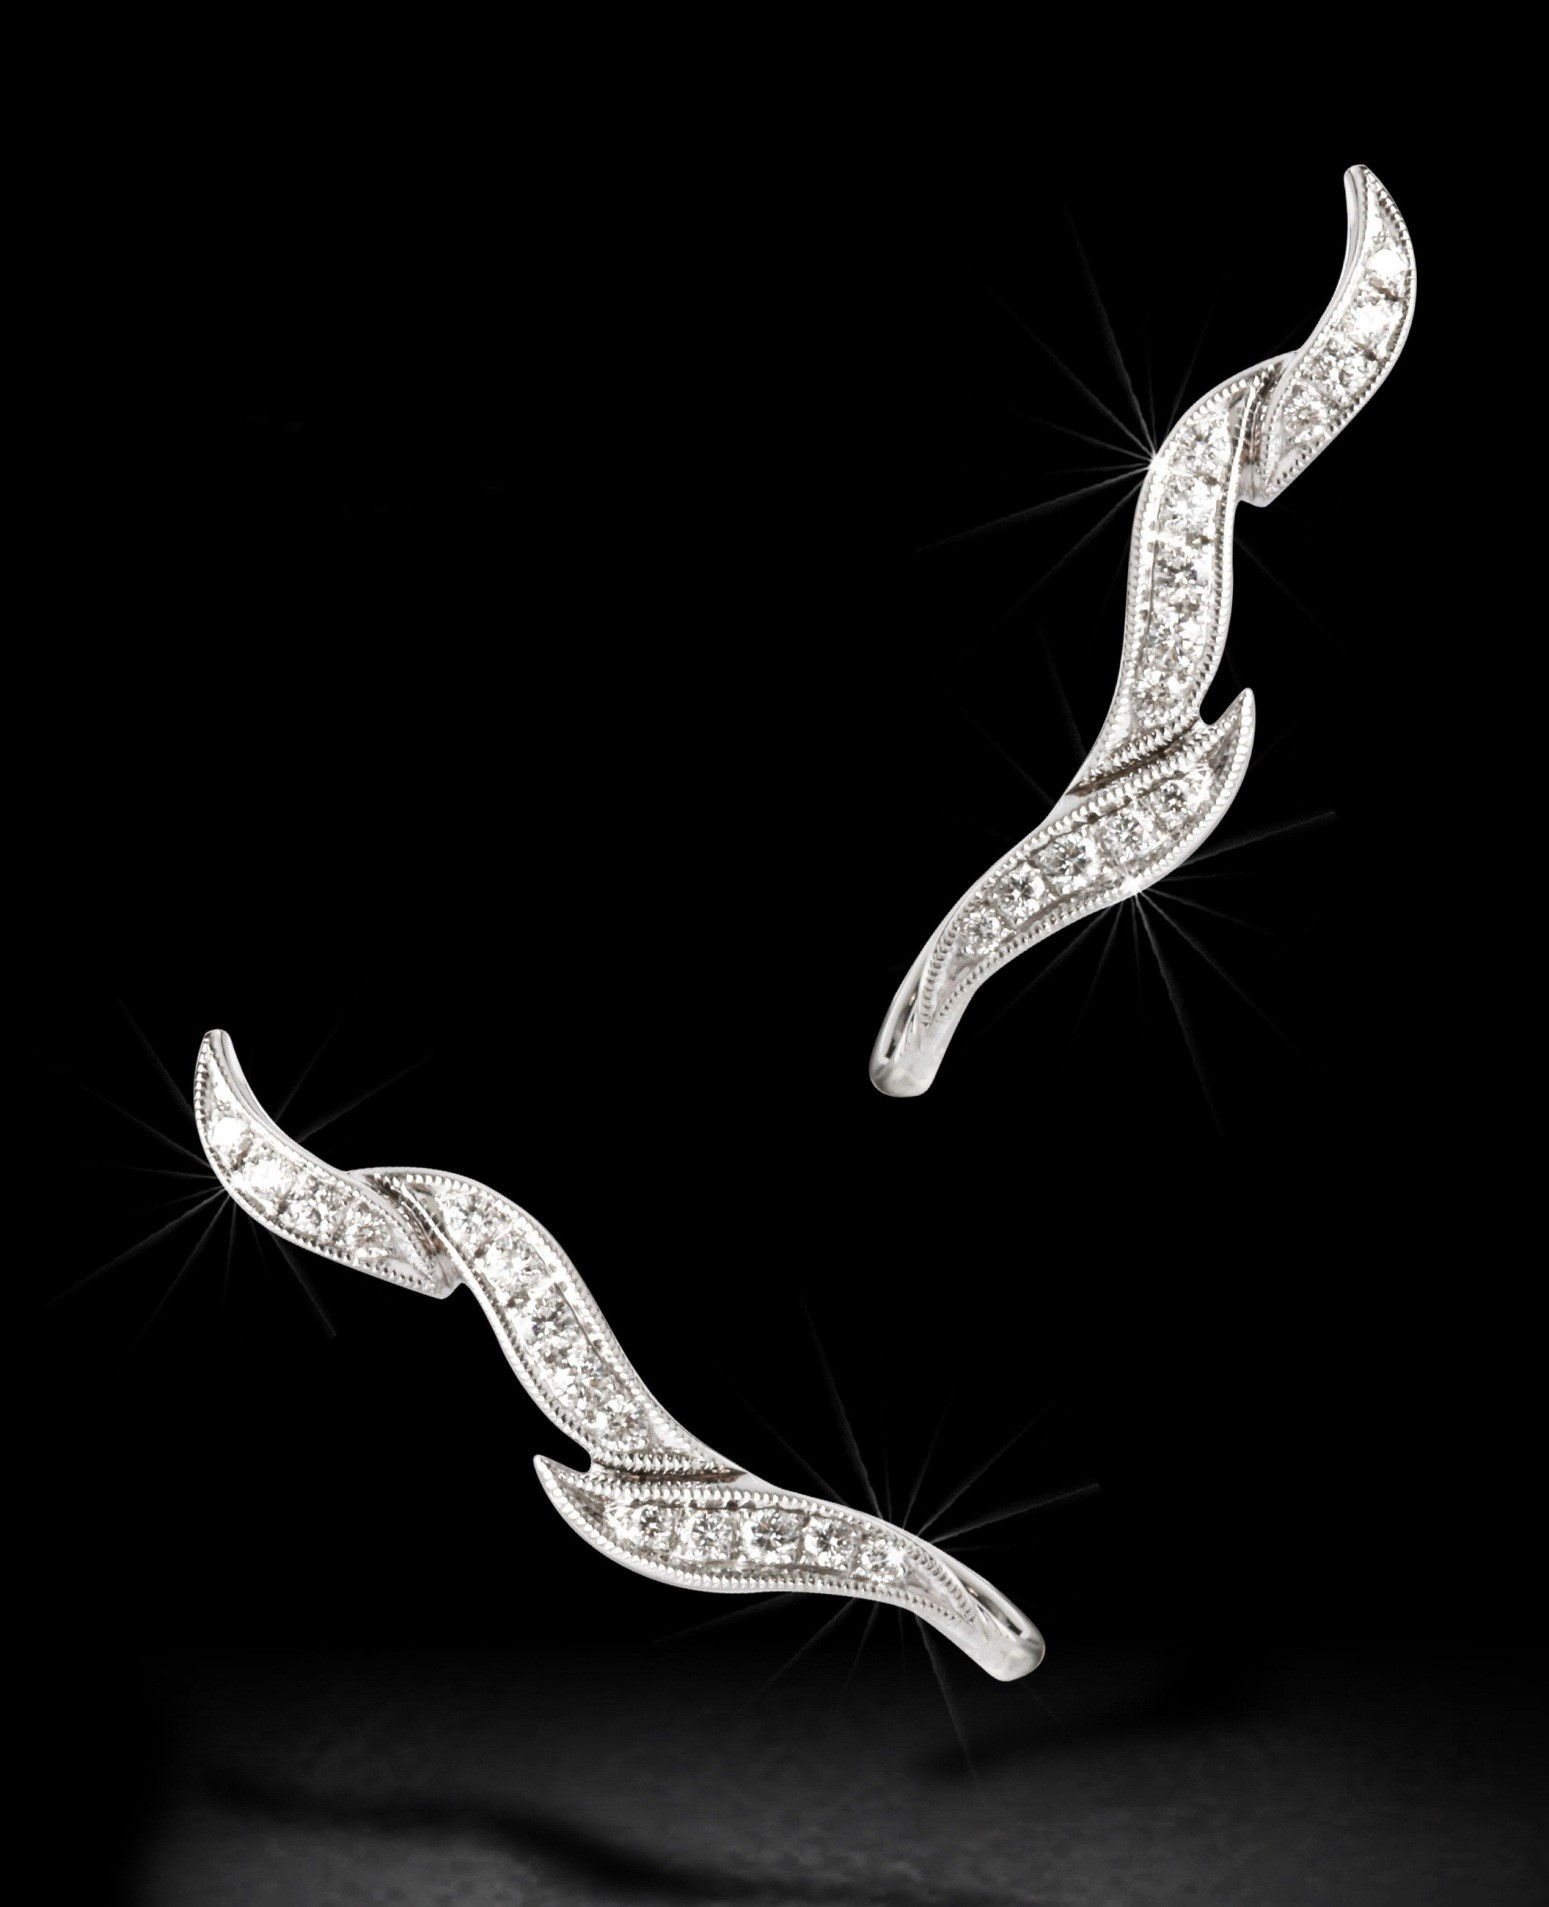 18 Carat White Gold and Diamond Diamond Ear Climber Flame Design